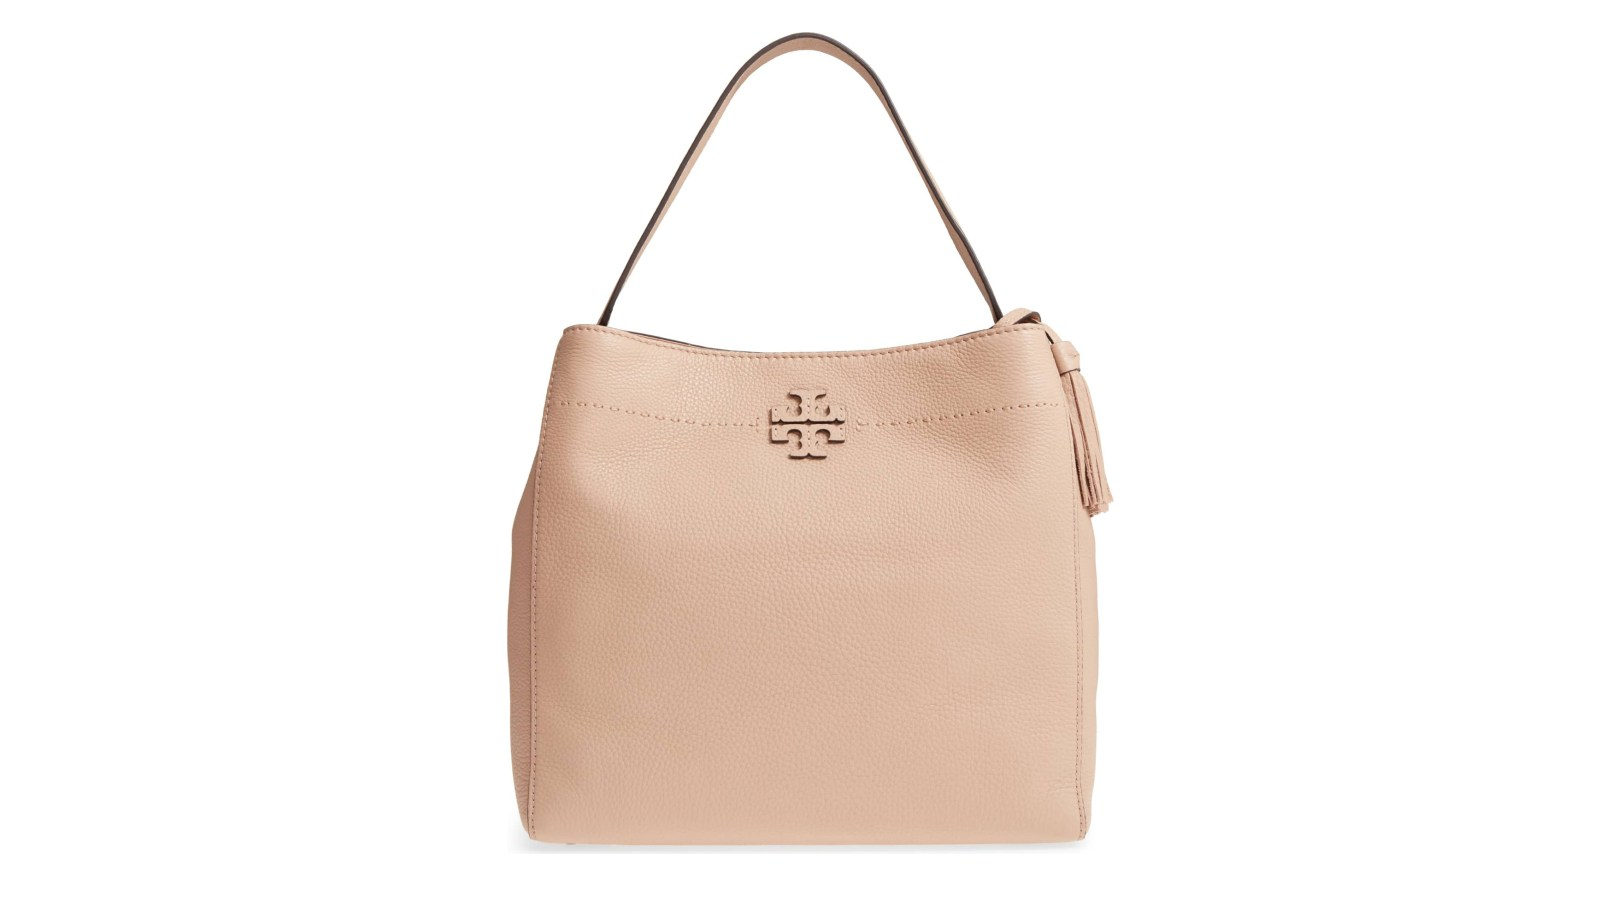 9c264849823 We Can Carry Around Everything and Stay Organized With This Tory Burch Bag